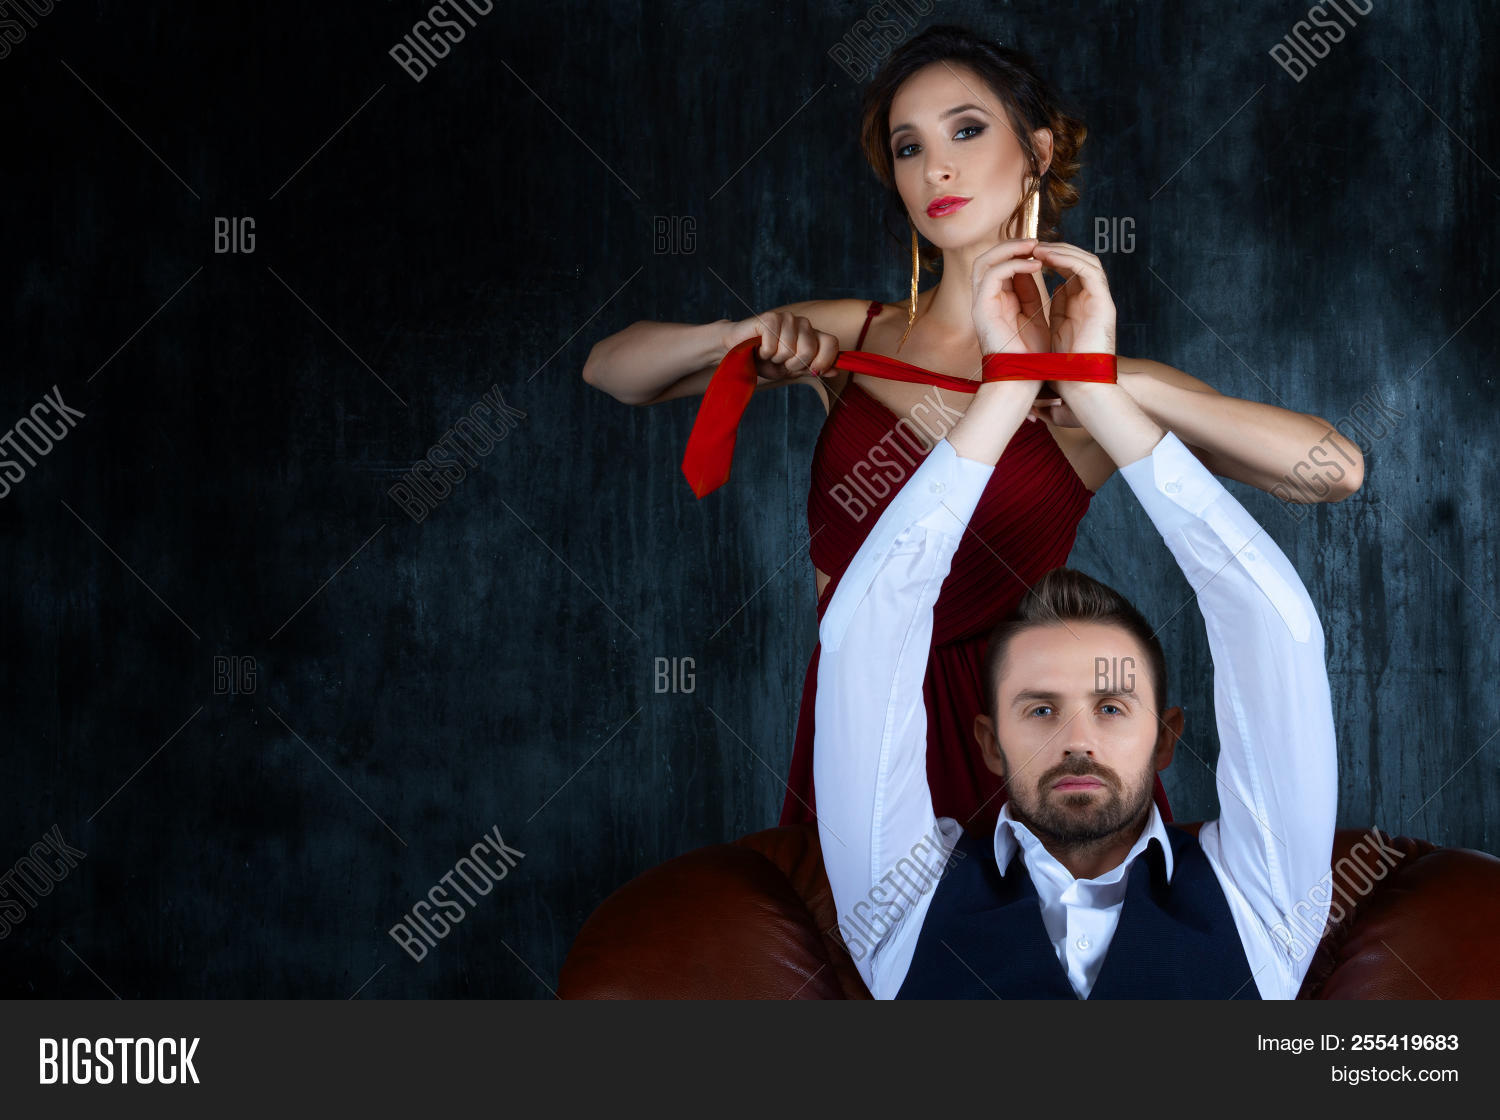 88481c33d80c Couple in dating. Rich man male dressed skirt sitting with tied hands.  Woman female in expensive red evening dress tying hands of man by red tie.